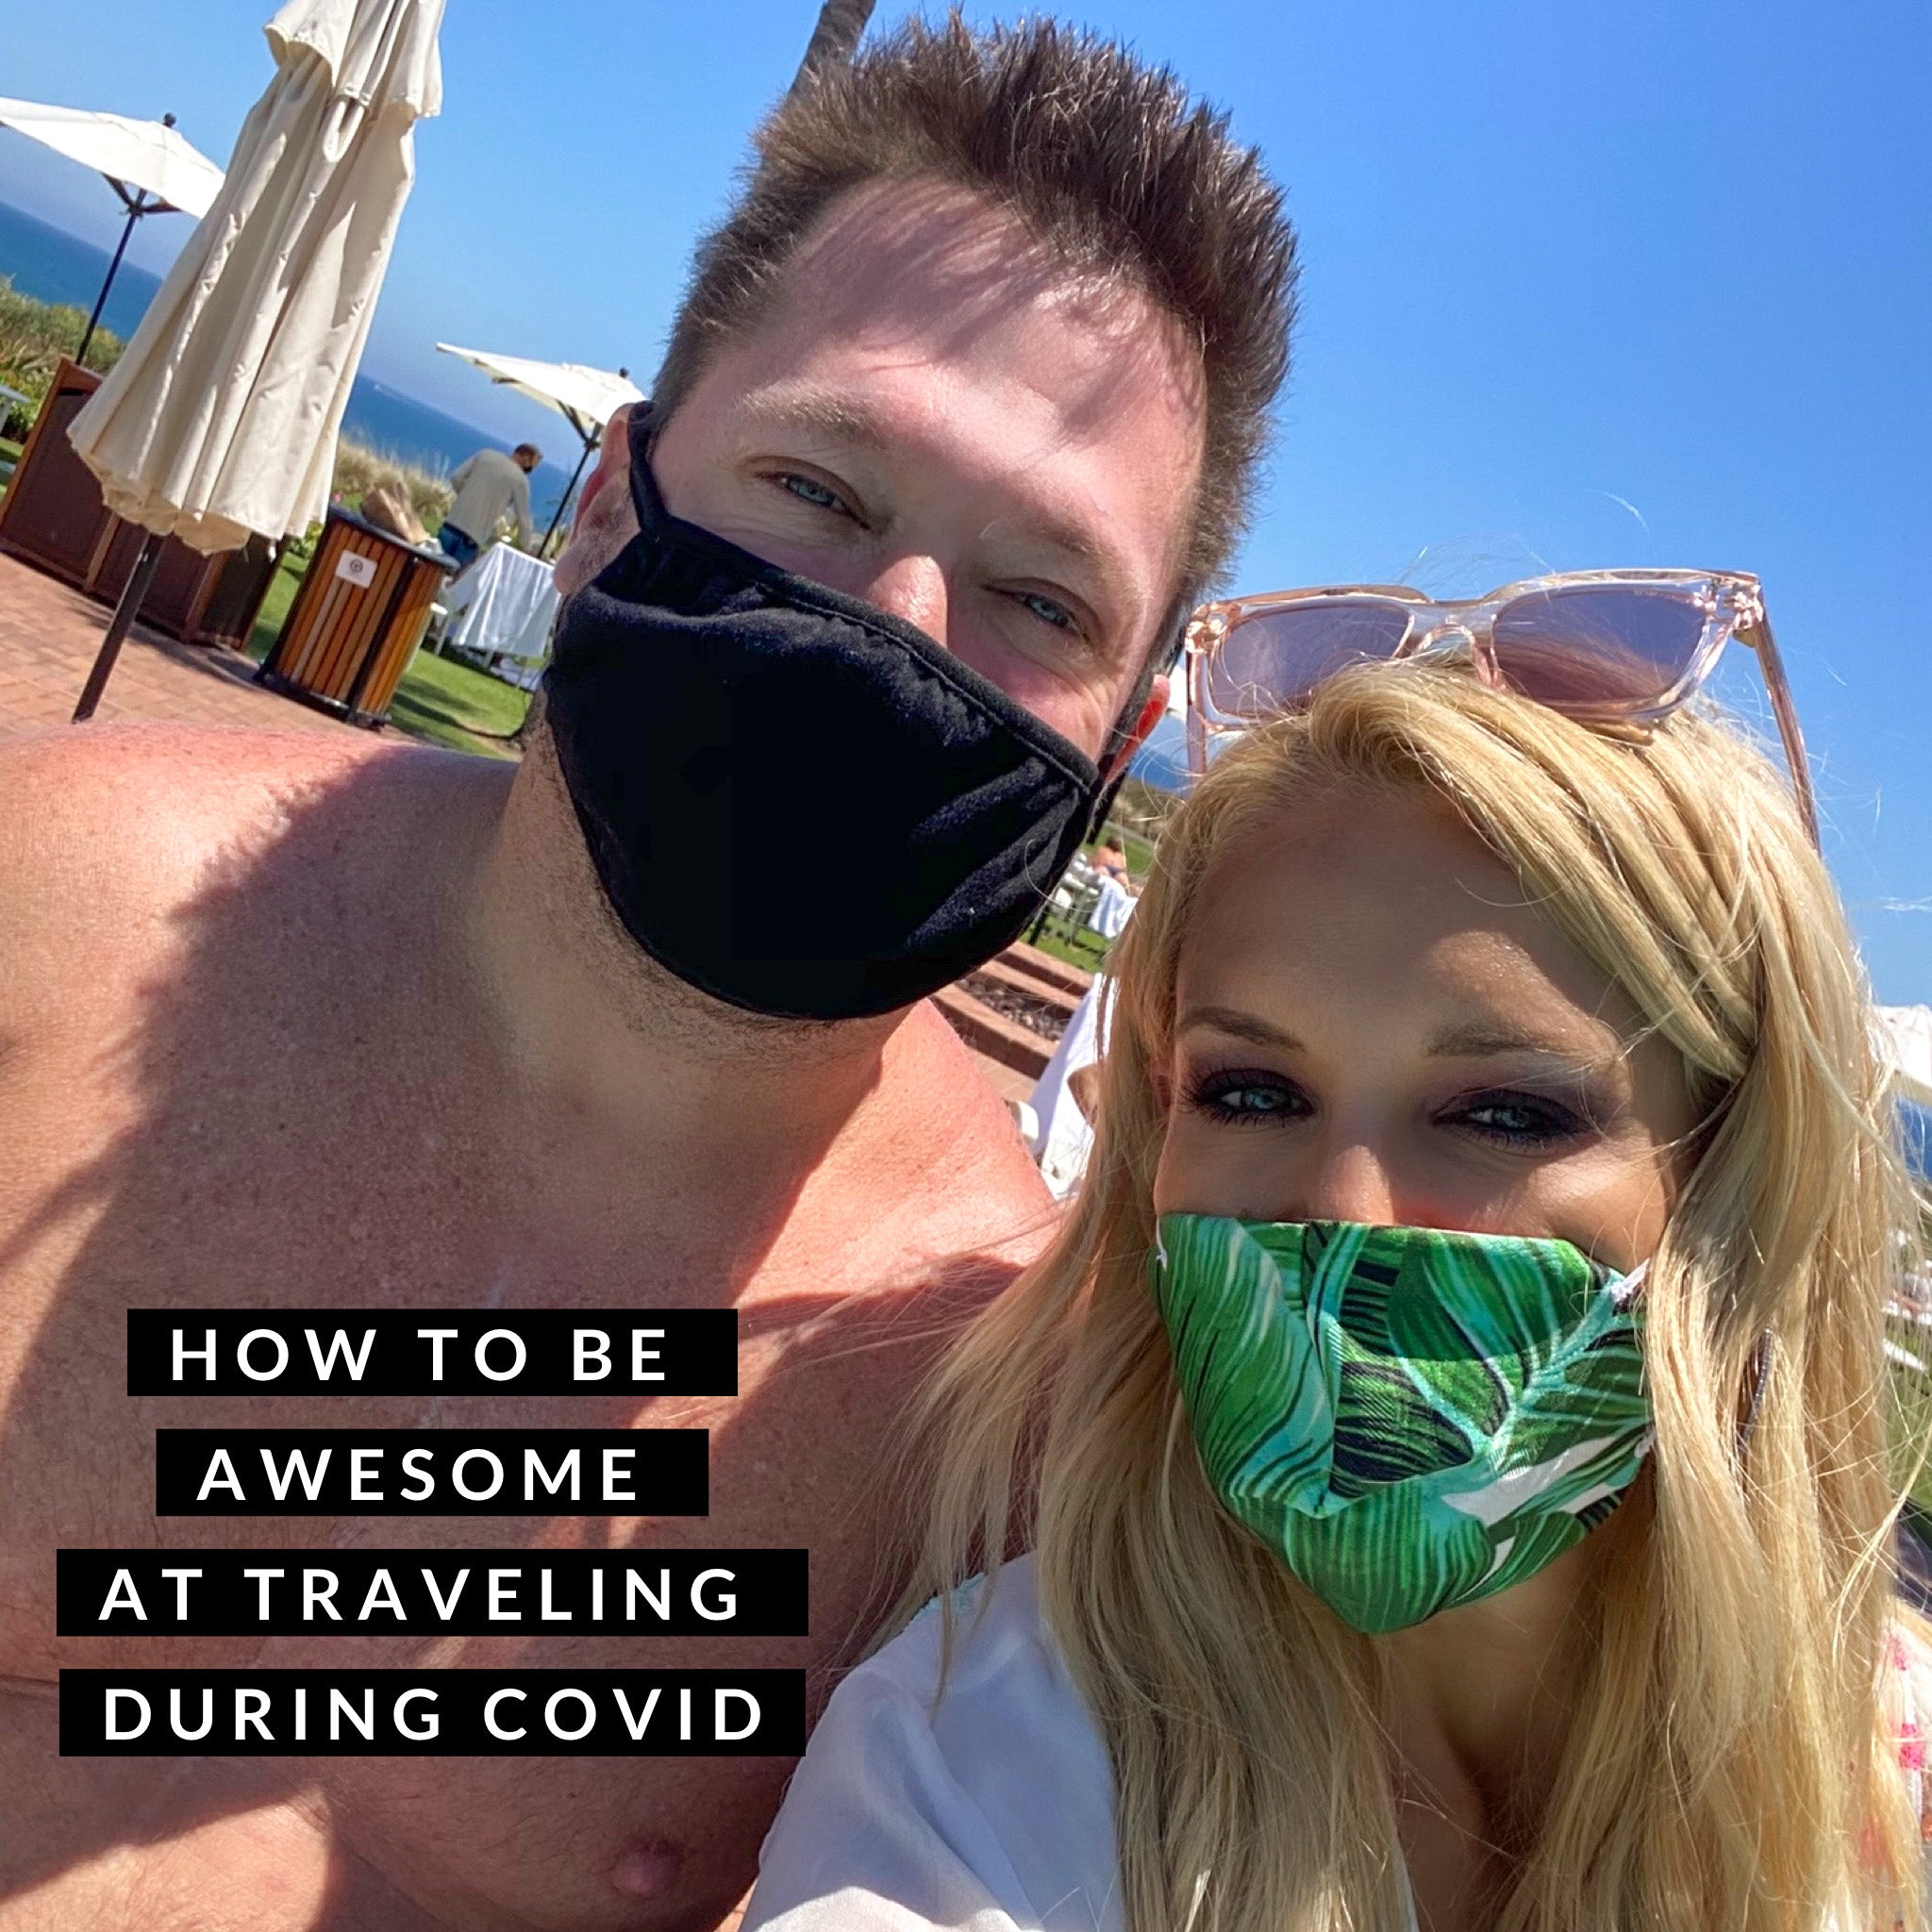 How To Be Awesome At Traveling During Covid